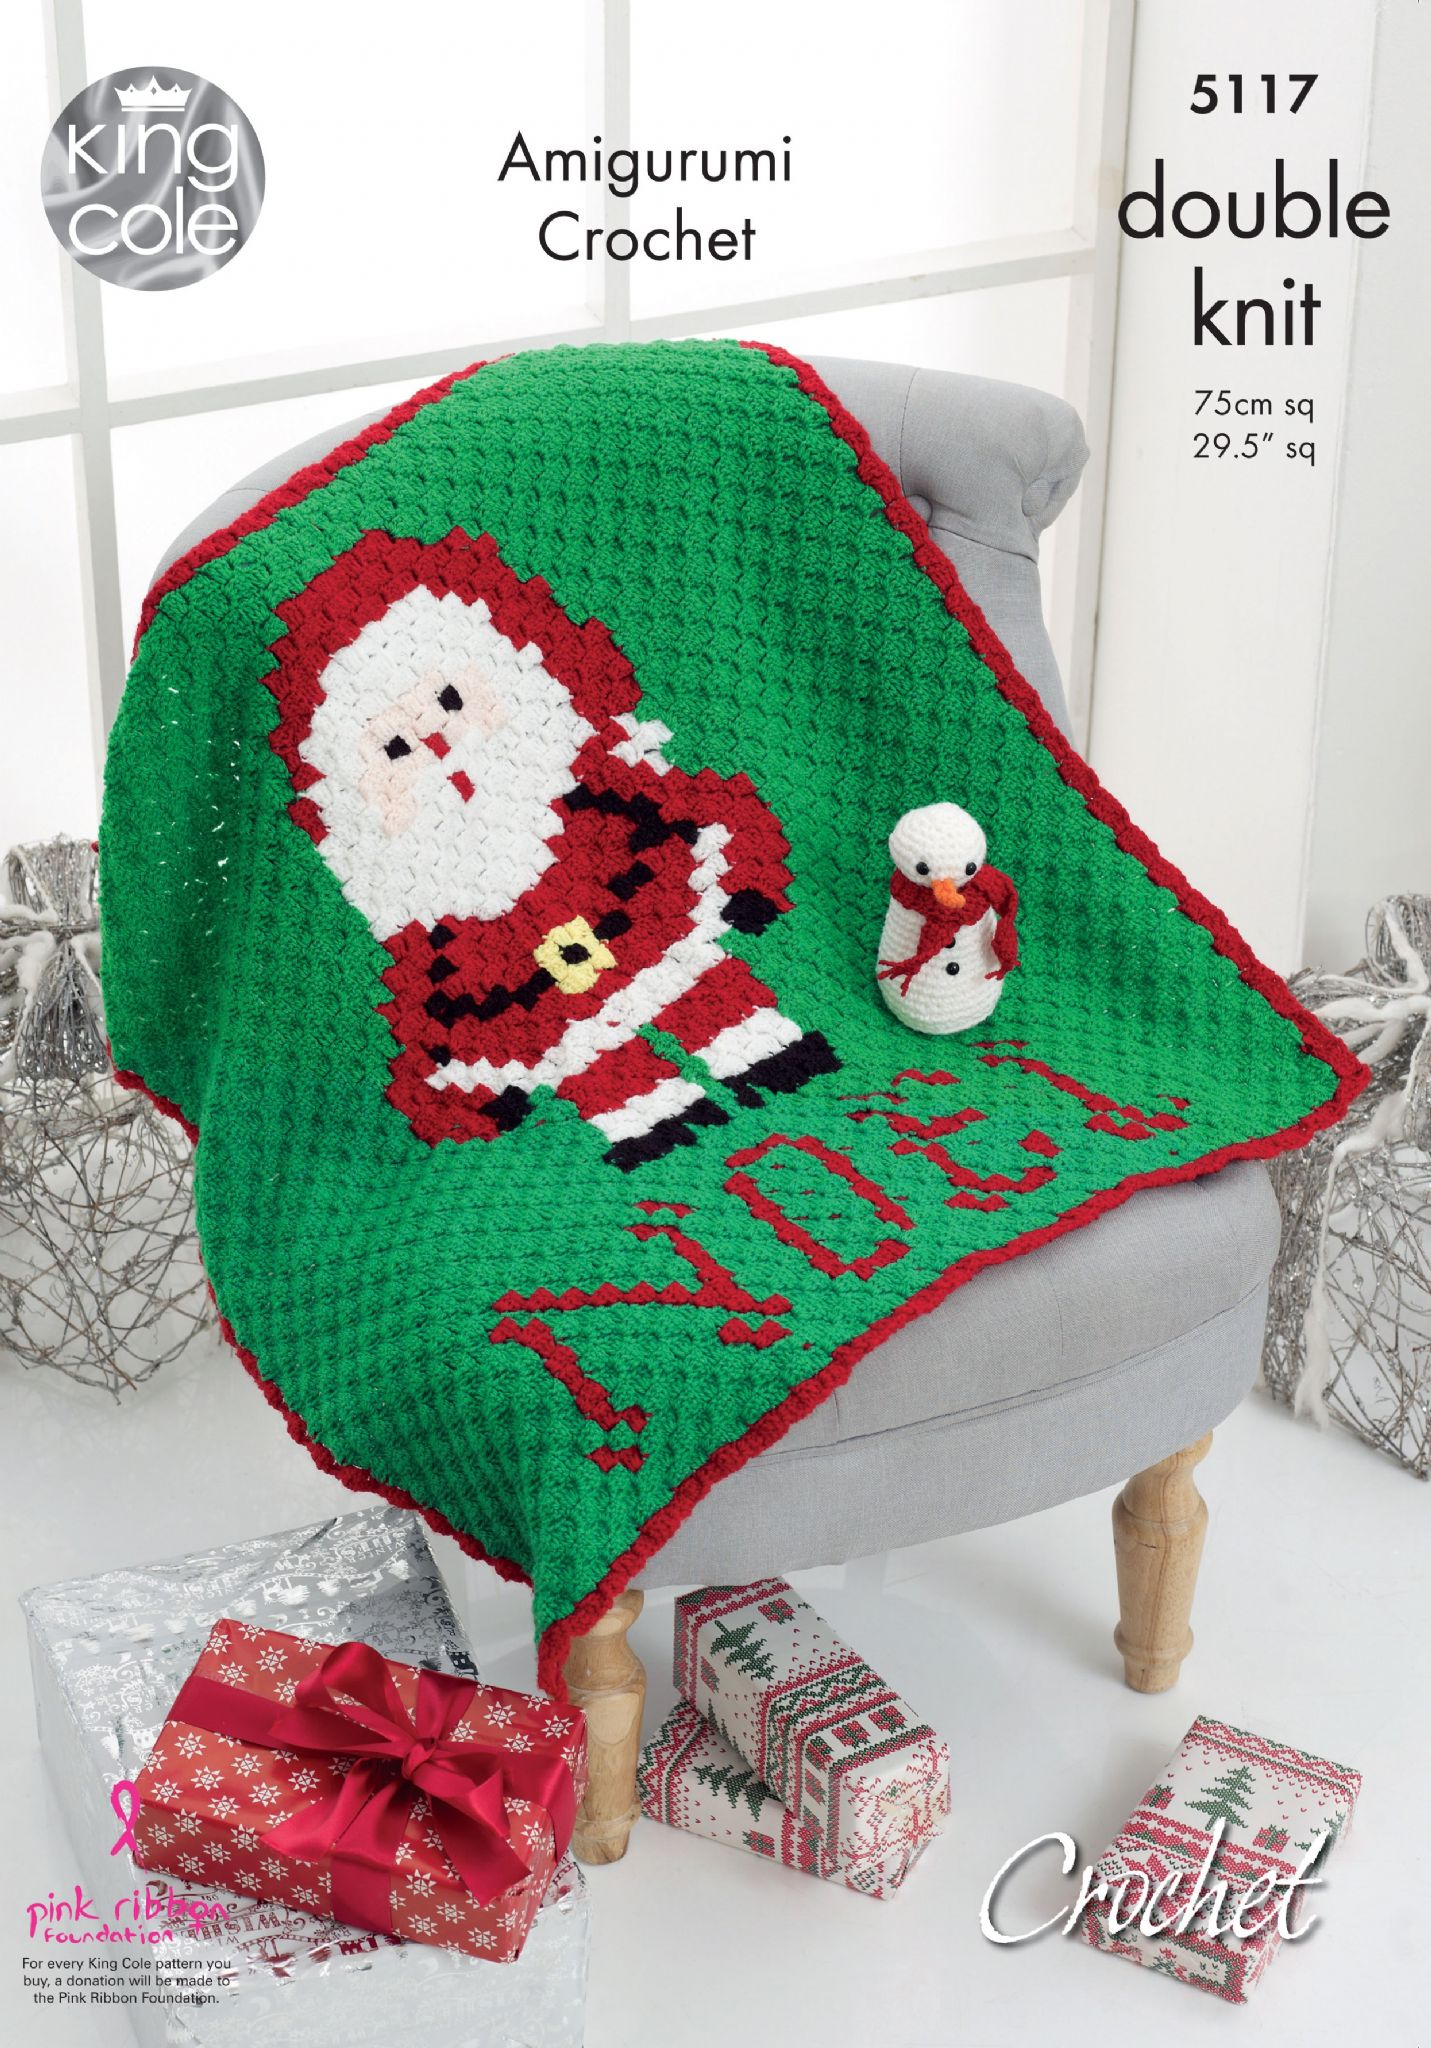 Christmas CROCHET Patterns and Books